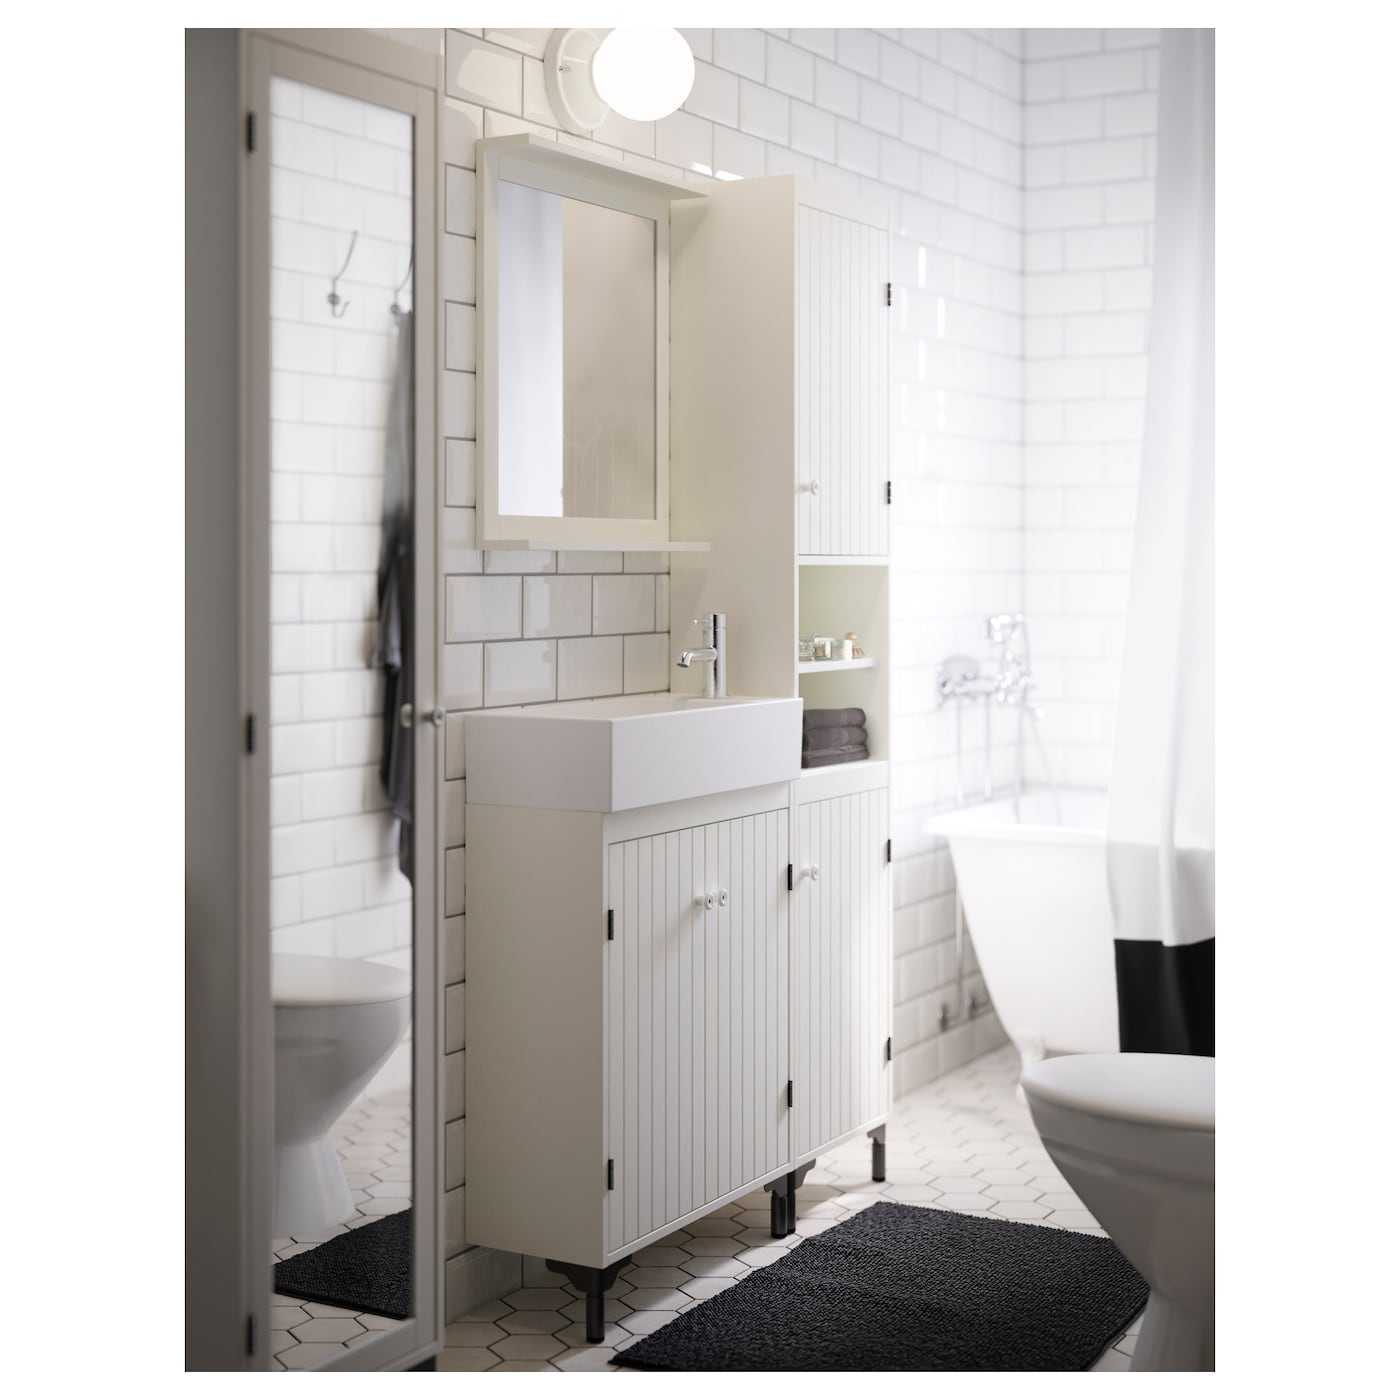 IKEA SILVERÅN high cabinet with mirror door You can mount the door to open from the right or left.